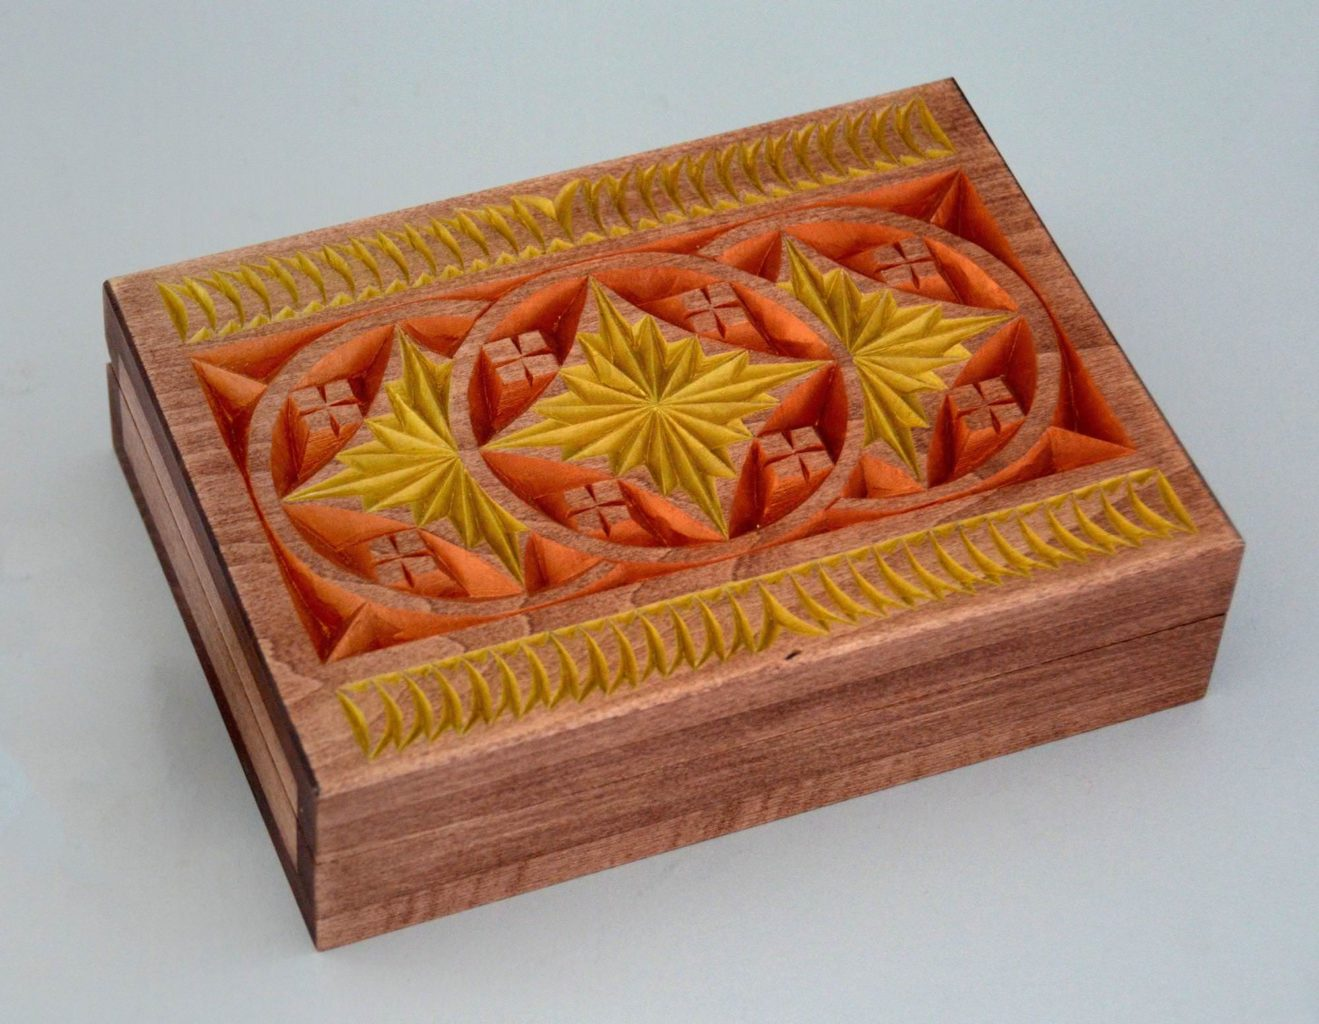 Chip-carved box © 2015 Marty Leenhouts Chip-carved box © 2015 Marty Leenhouts